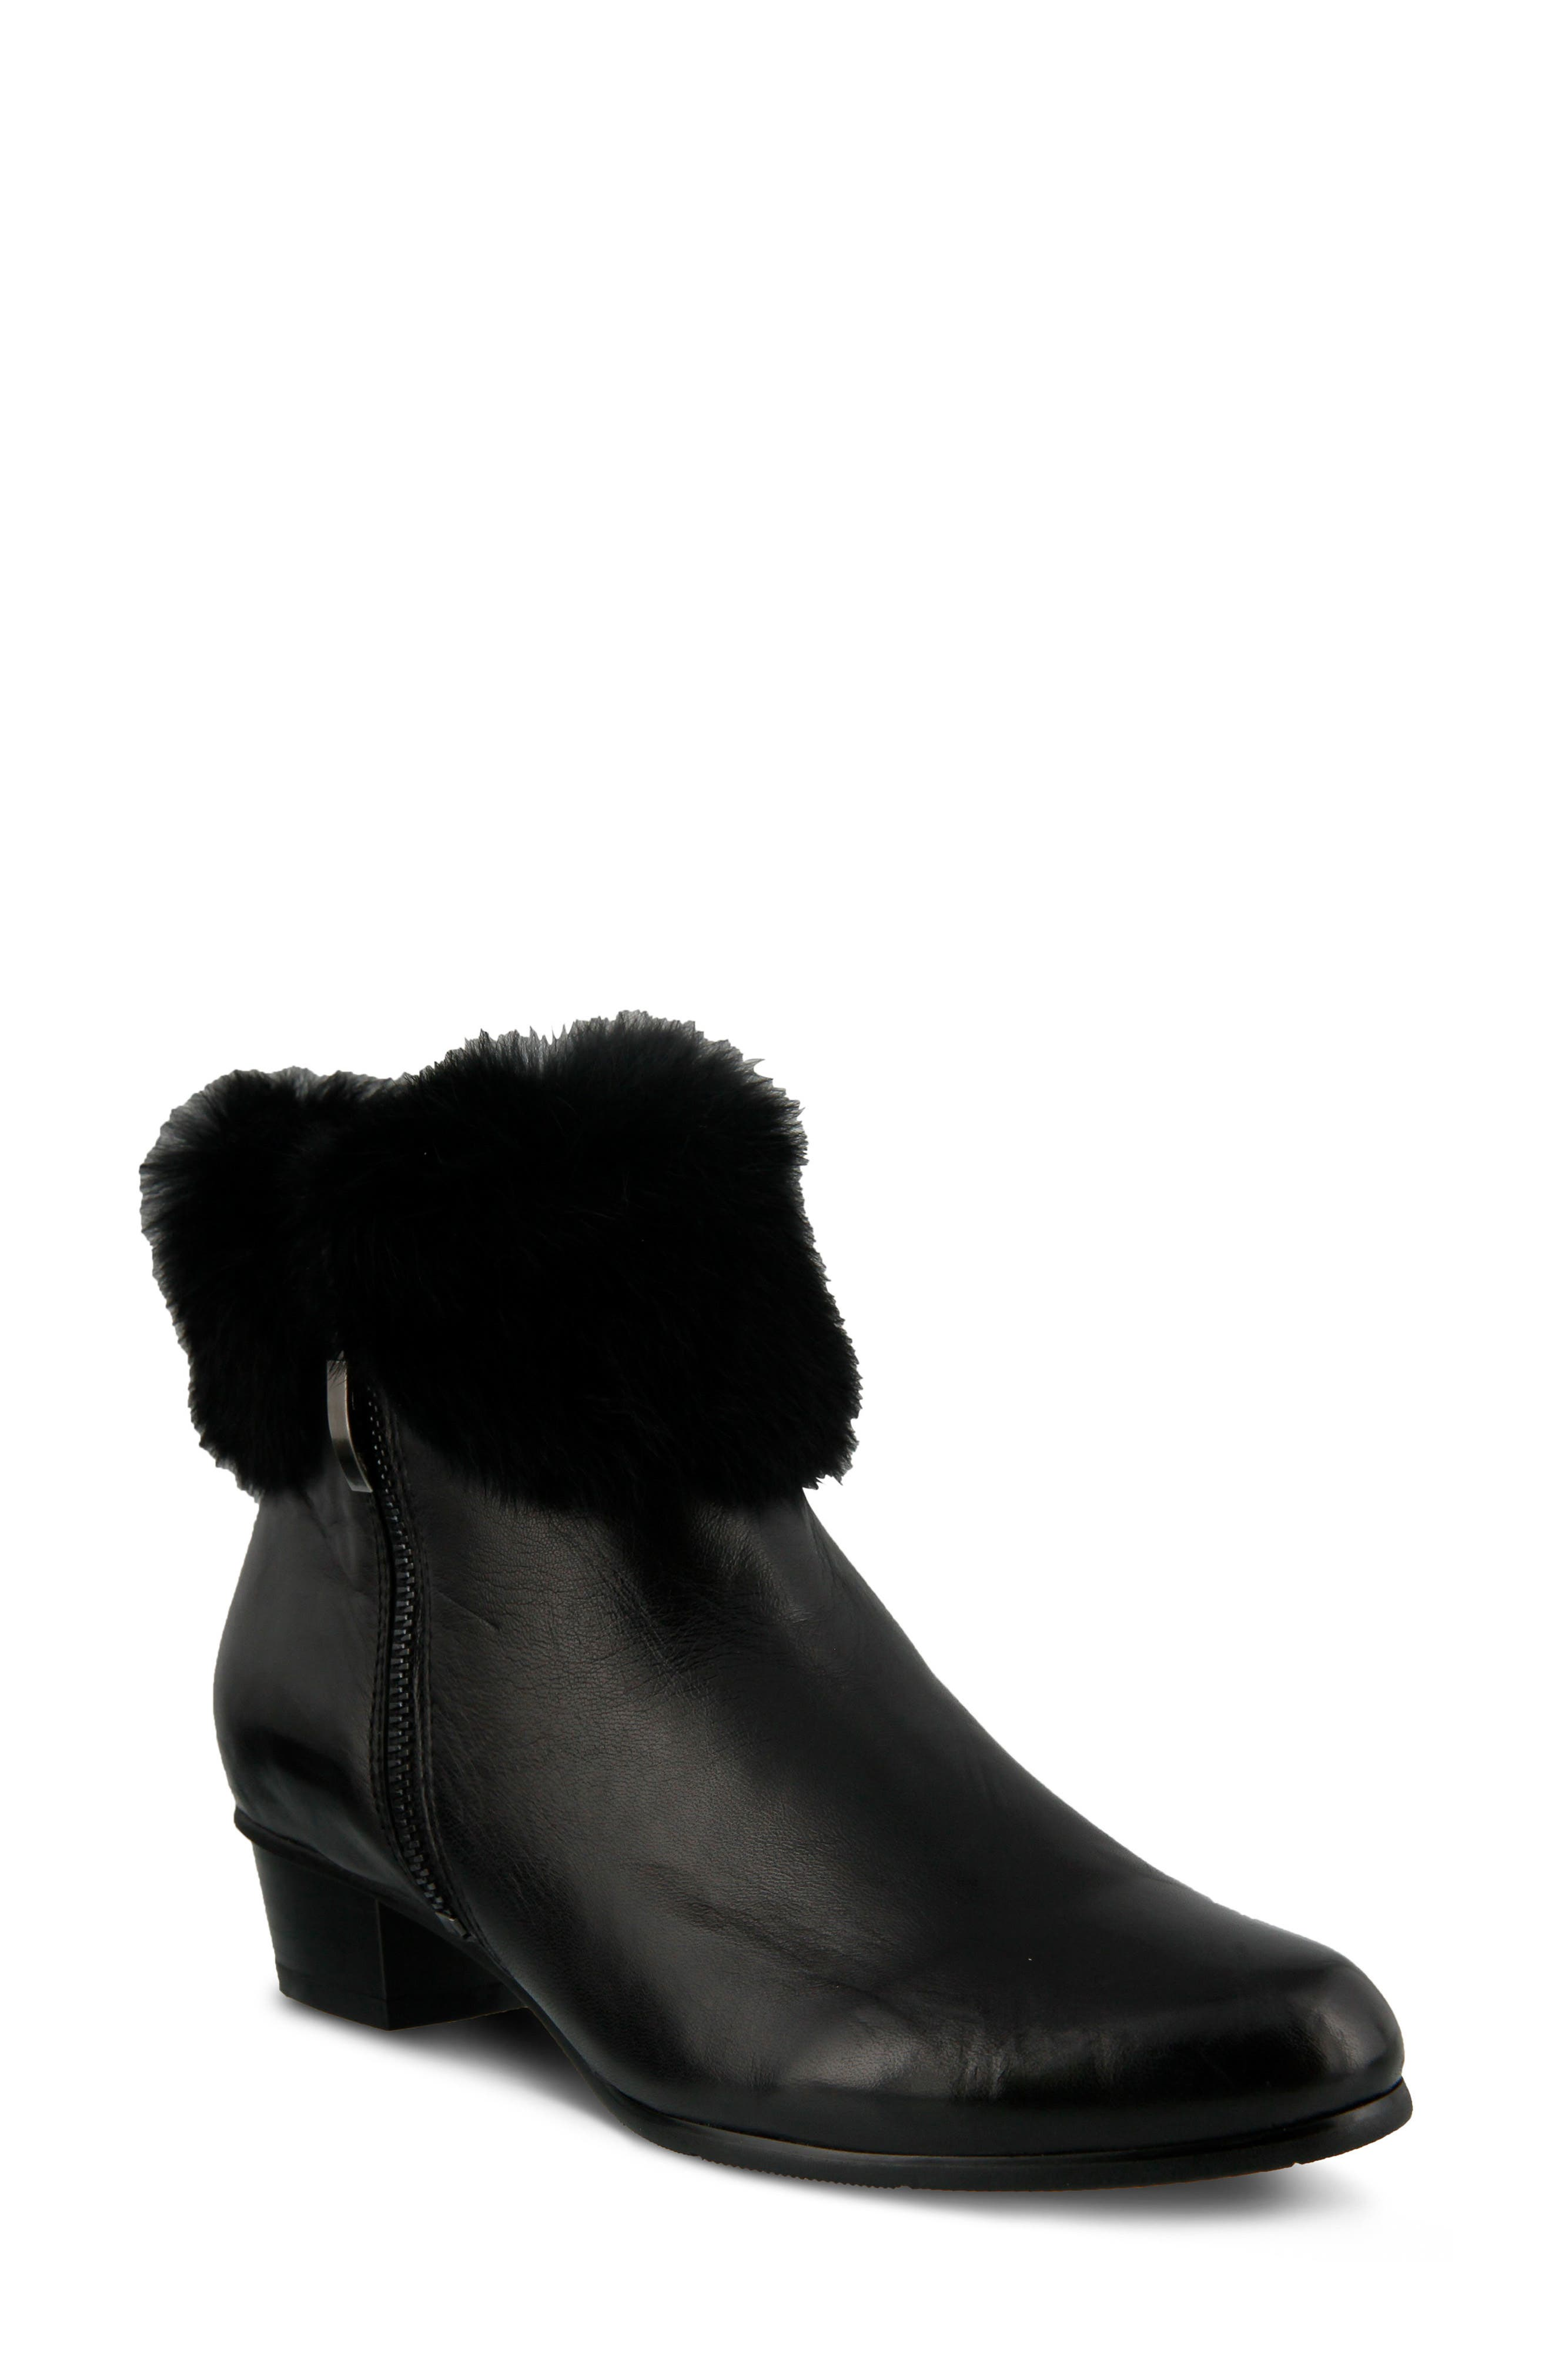 Burnside Faux Fur Trim Bootie,                             Main thumbnail 1, color,                             BLACK LEATHER